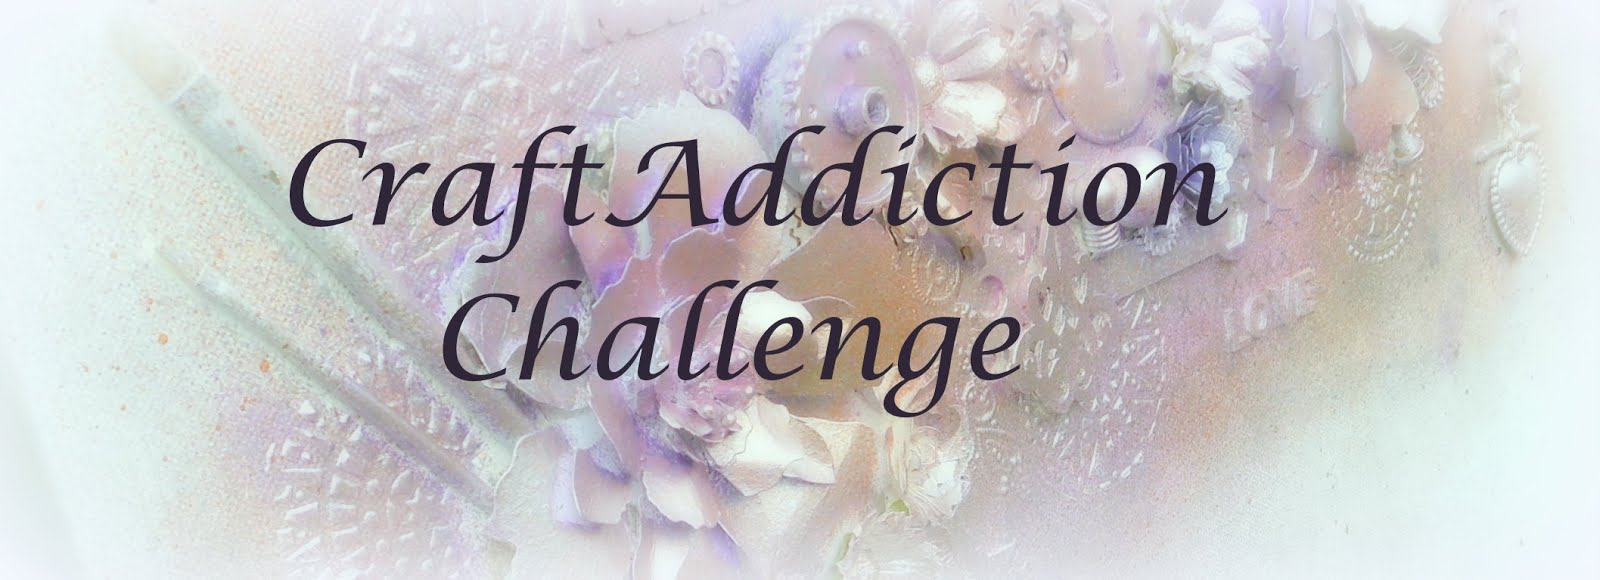 CraftAddiction Challengeblog